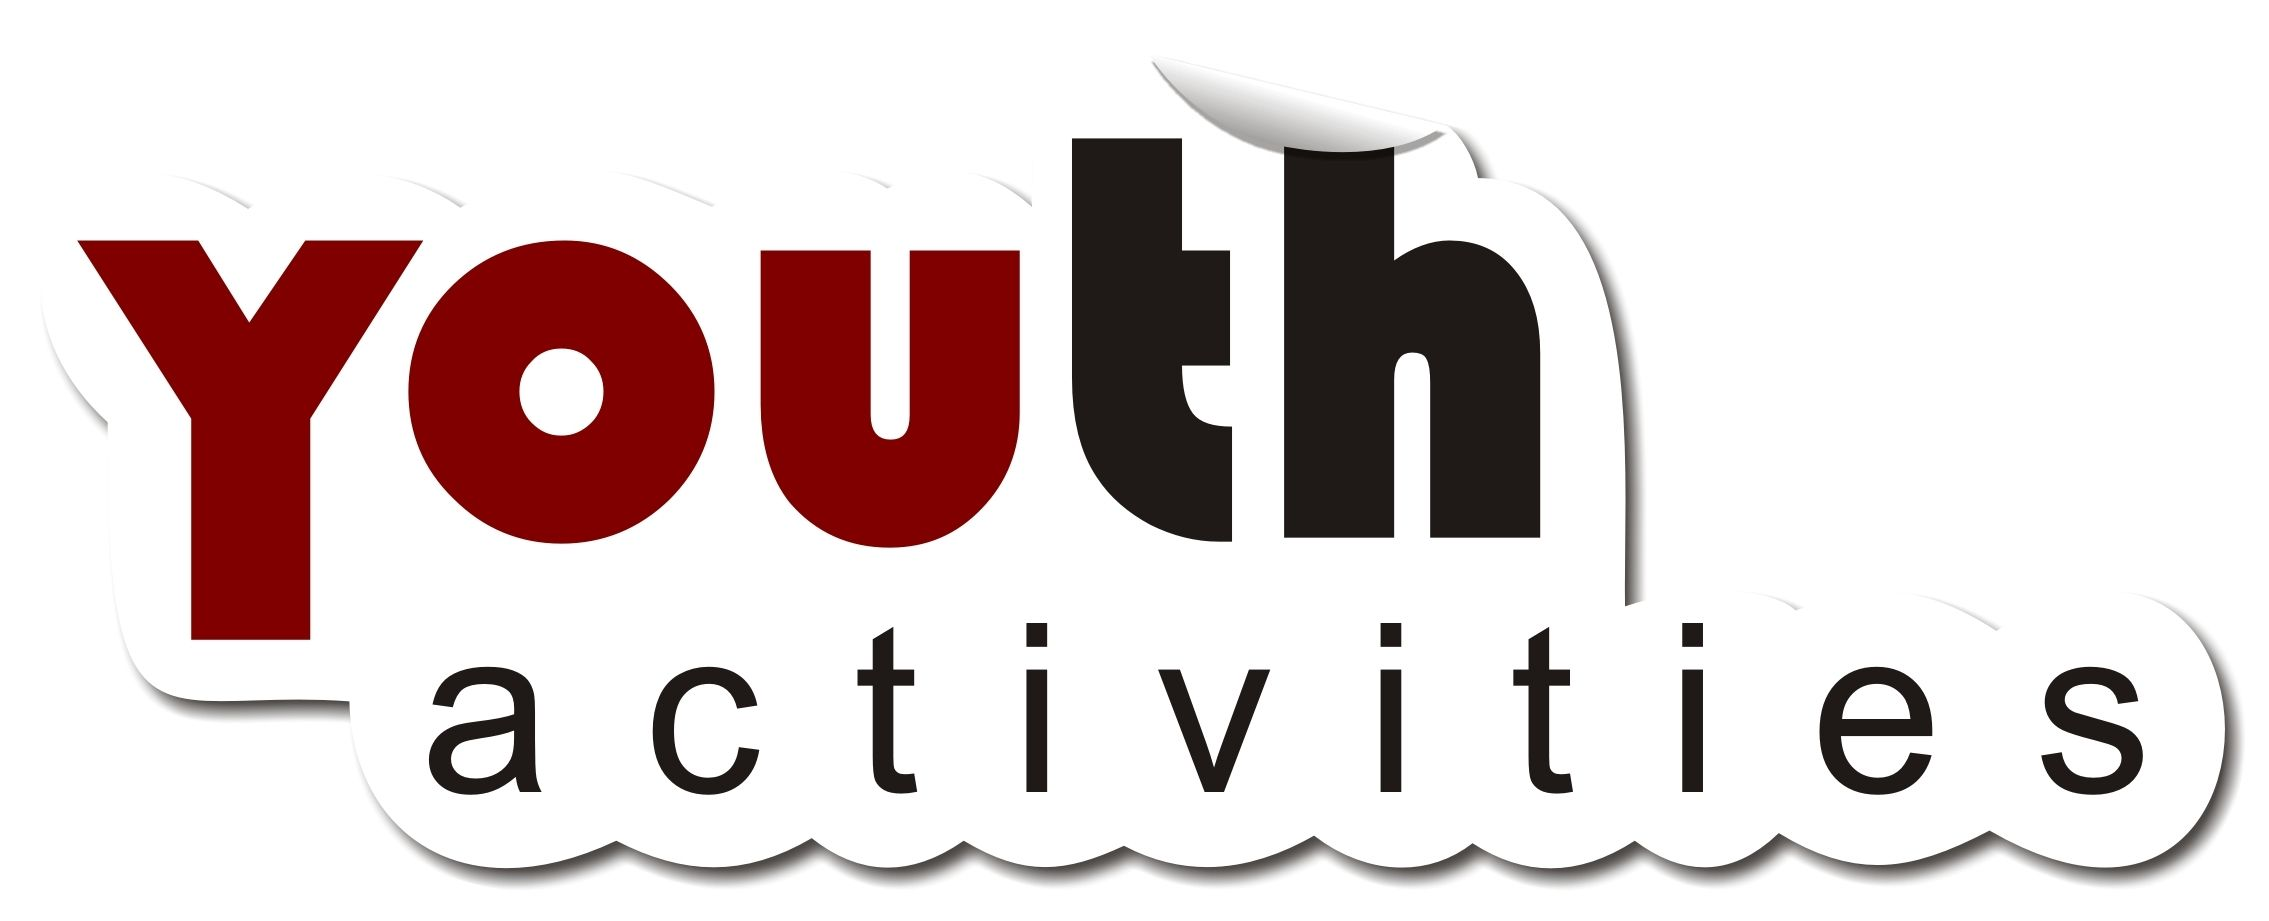 church youth group clipart youth ministry pinterest youth rh pinterest com church youth group clipart youth group news clipart